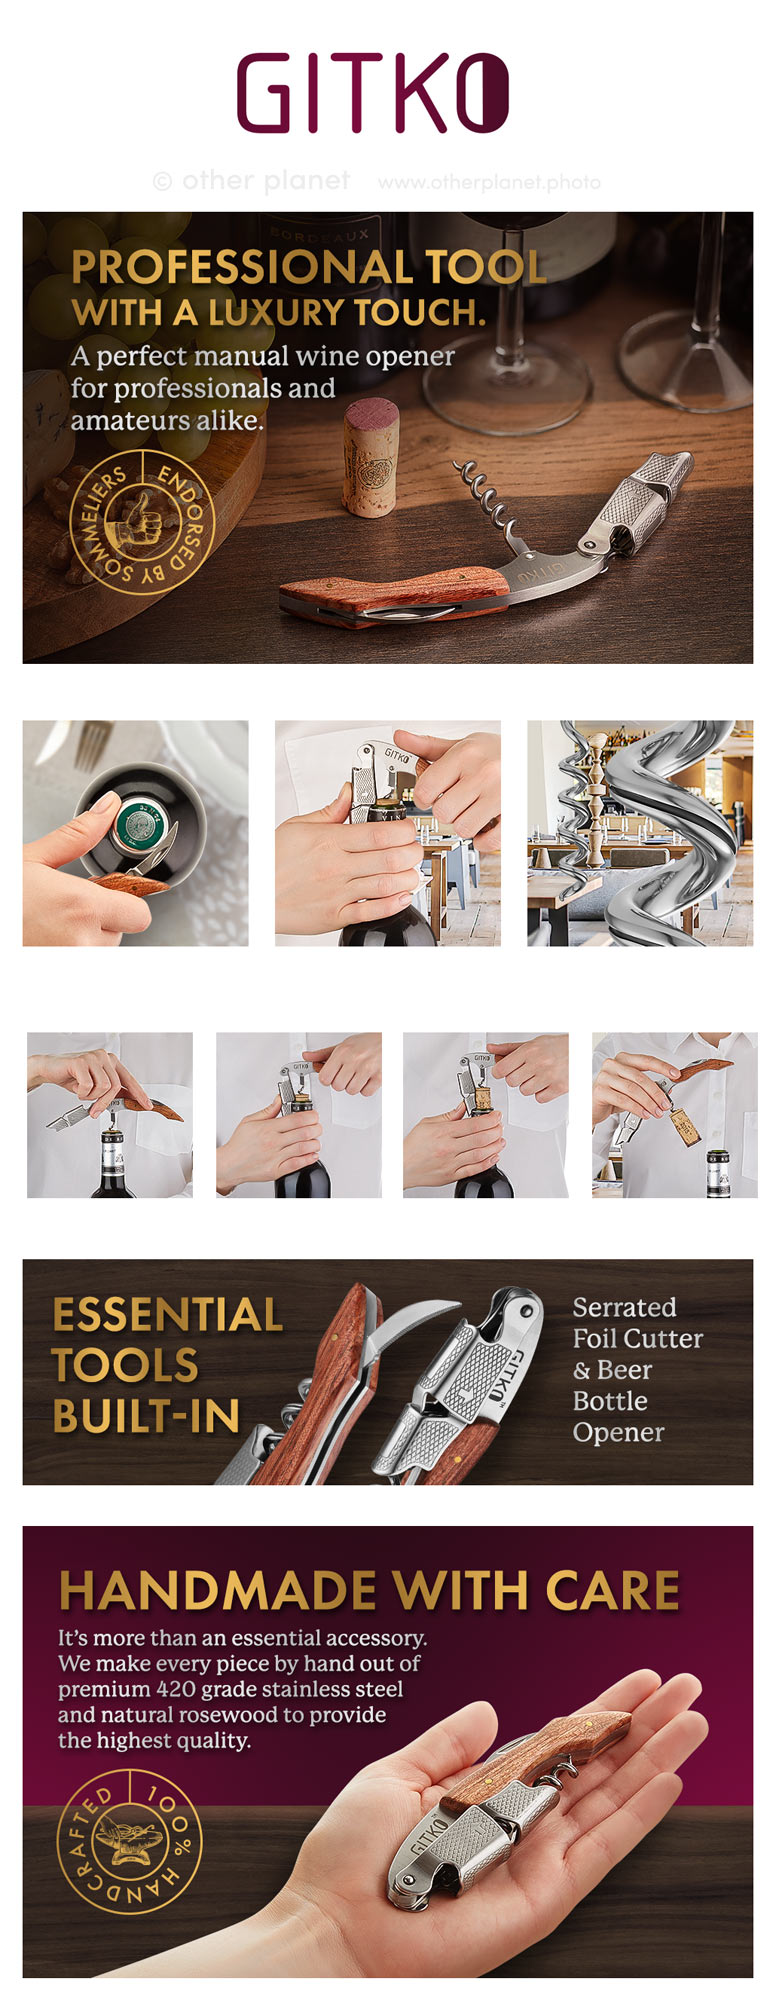 amazon fba product photography A+ content for Wine opener